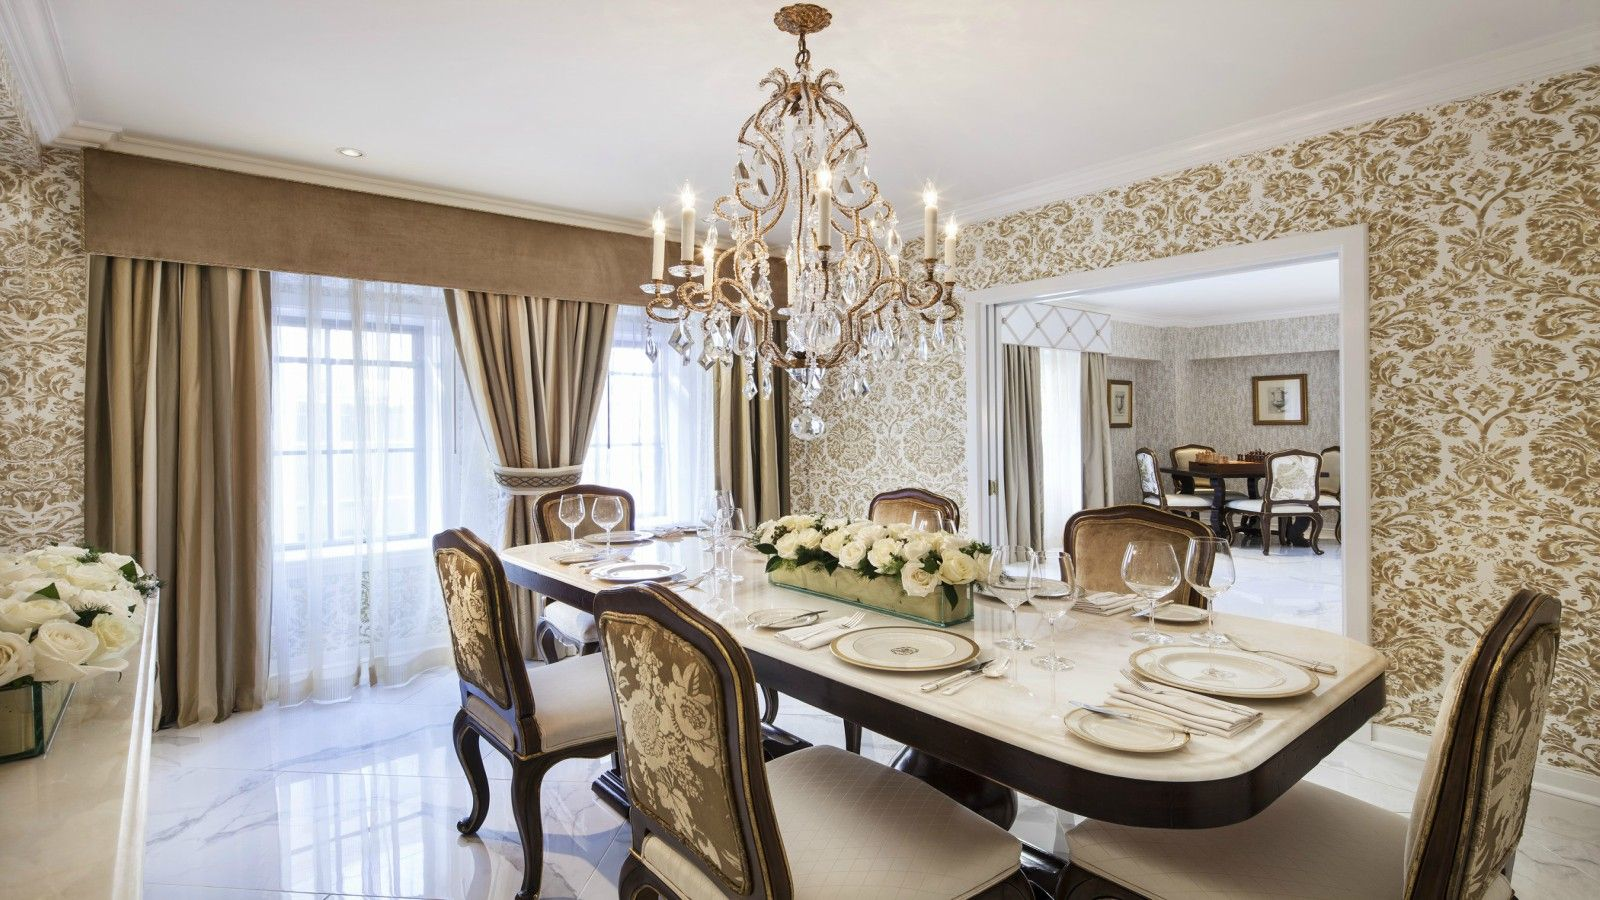 The St. Regis Washington, D.C. - Presidential Suite Dining Room